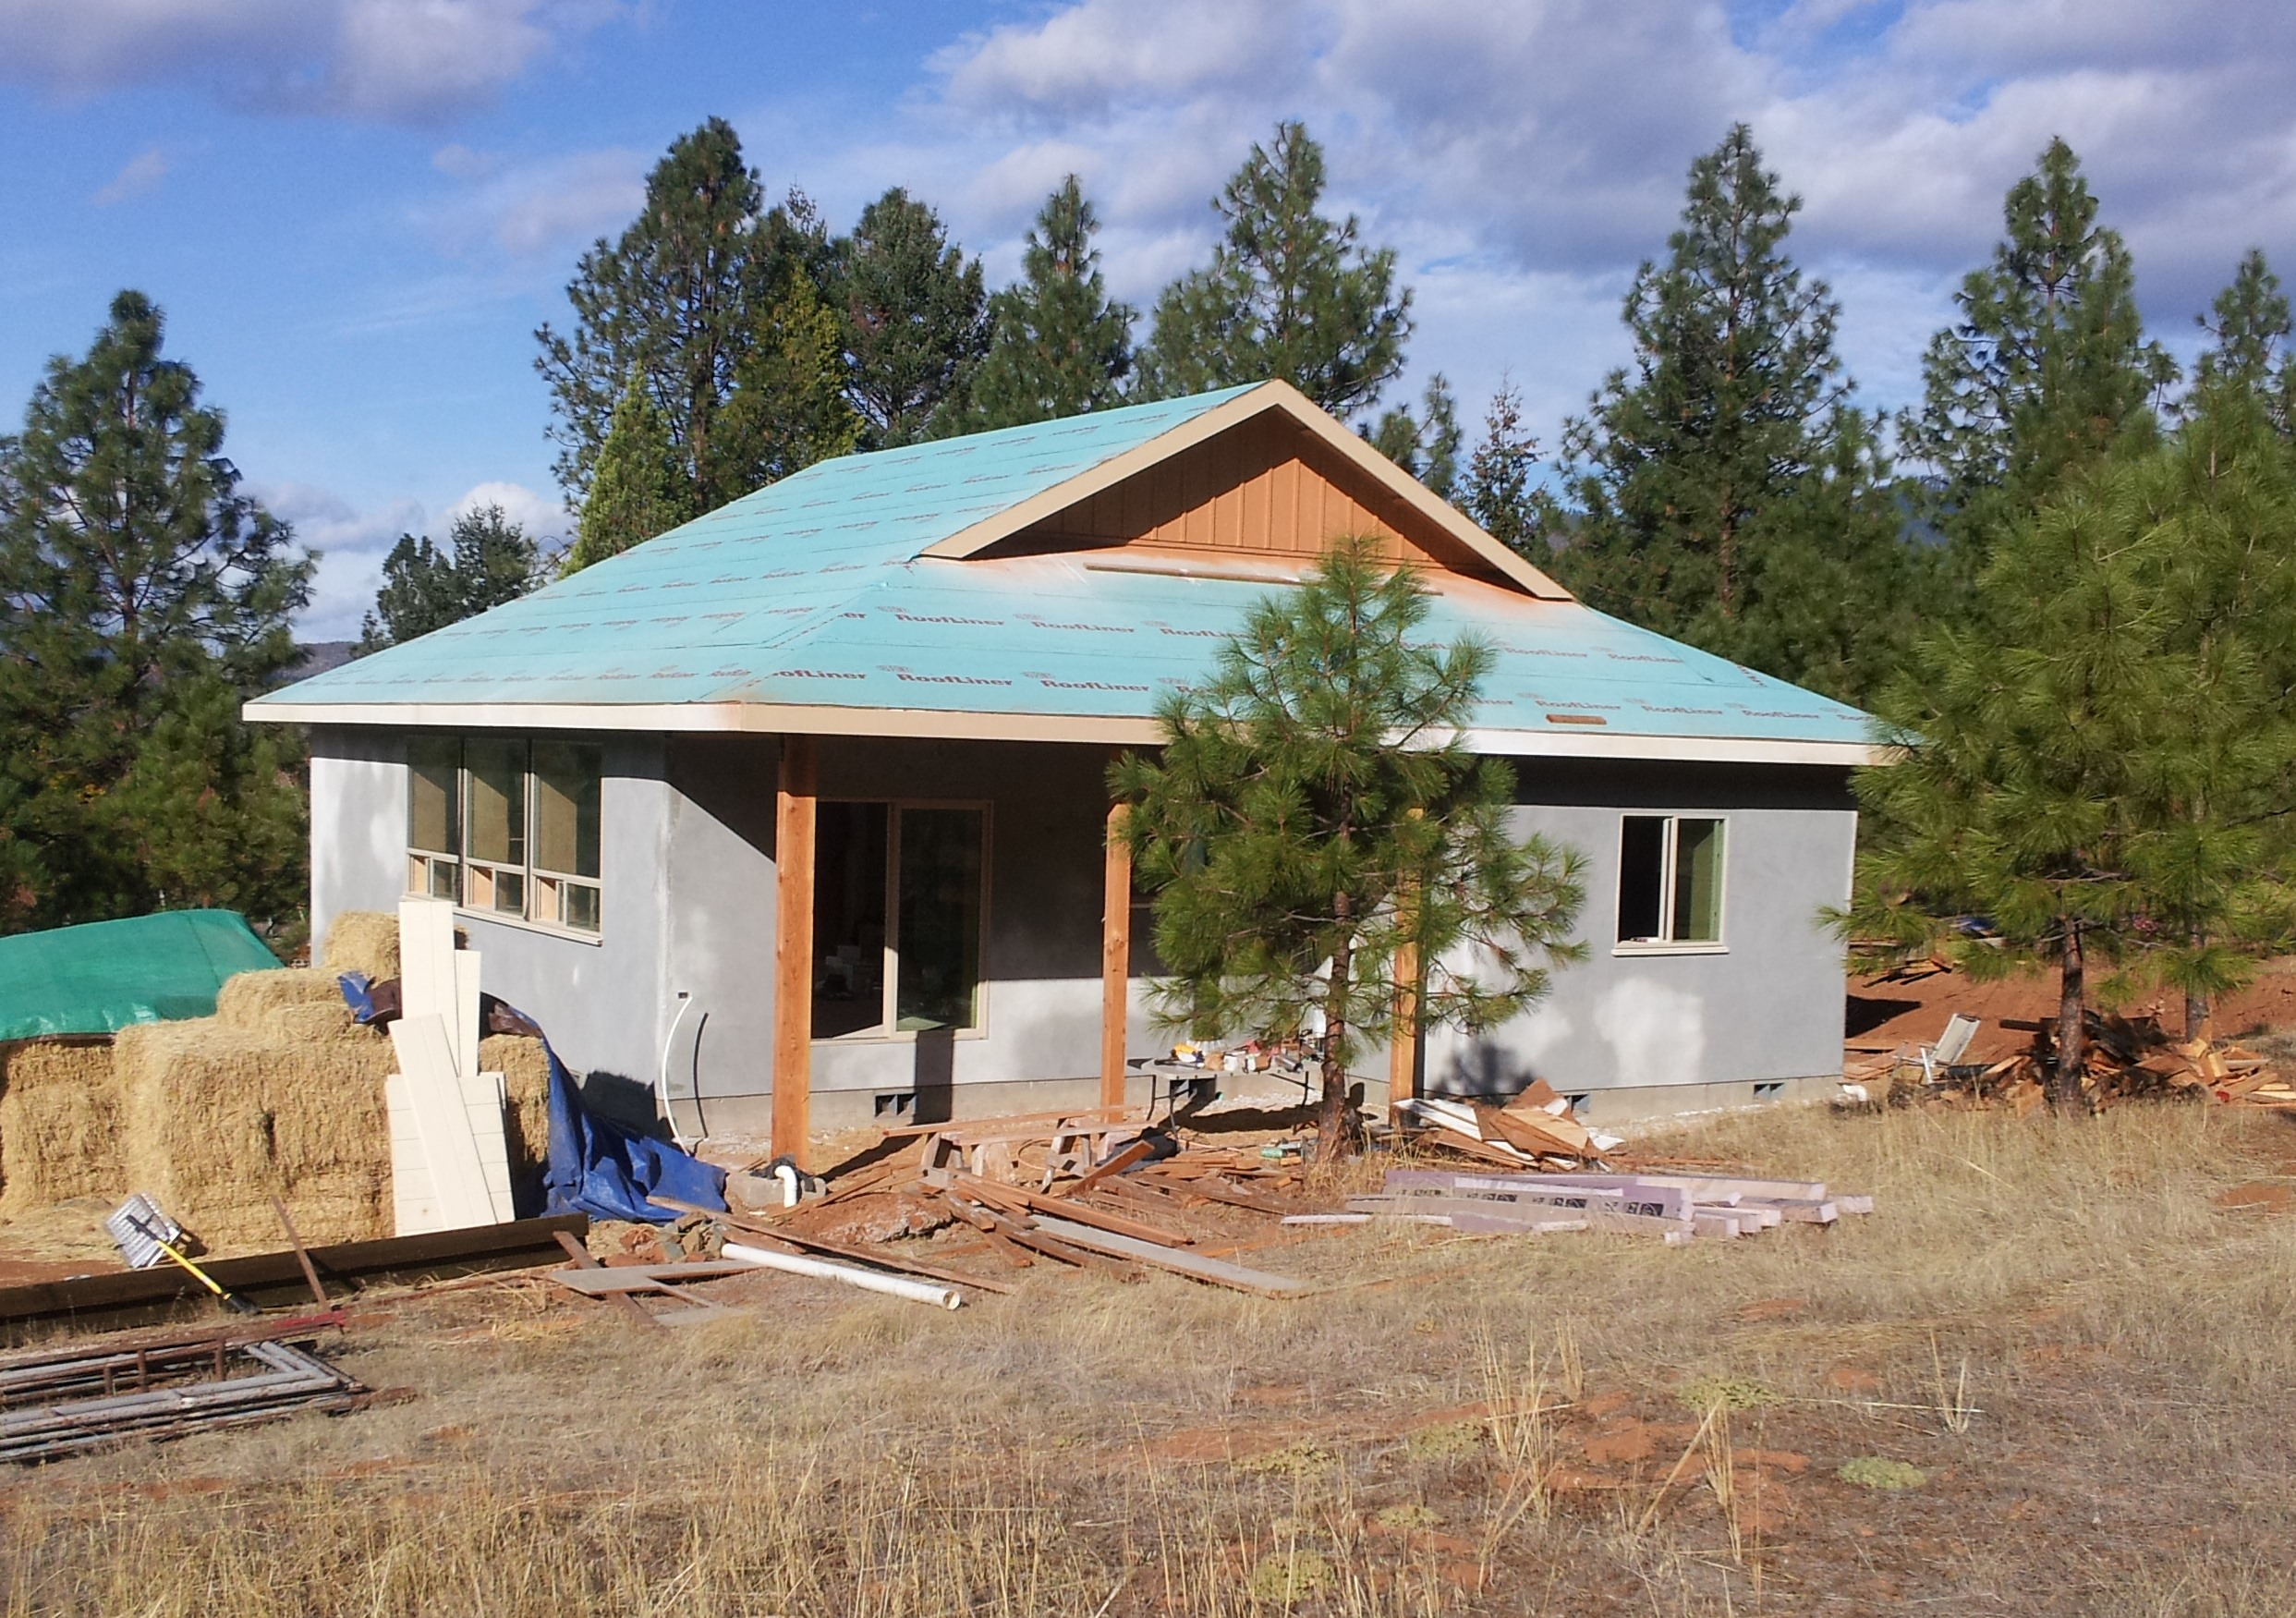 Lime plastered exterior of passive solar straw bale home.